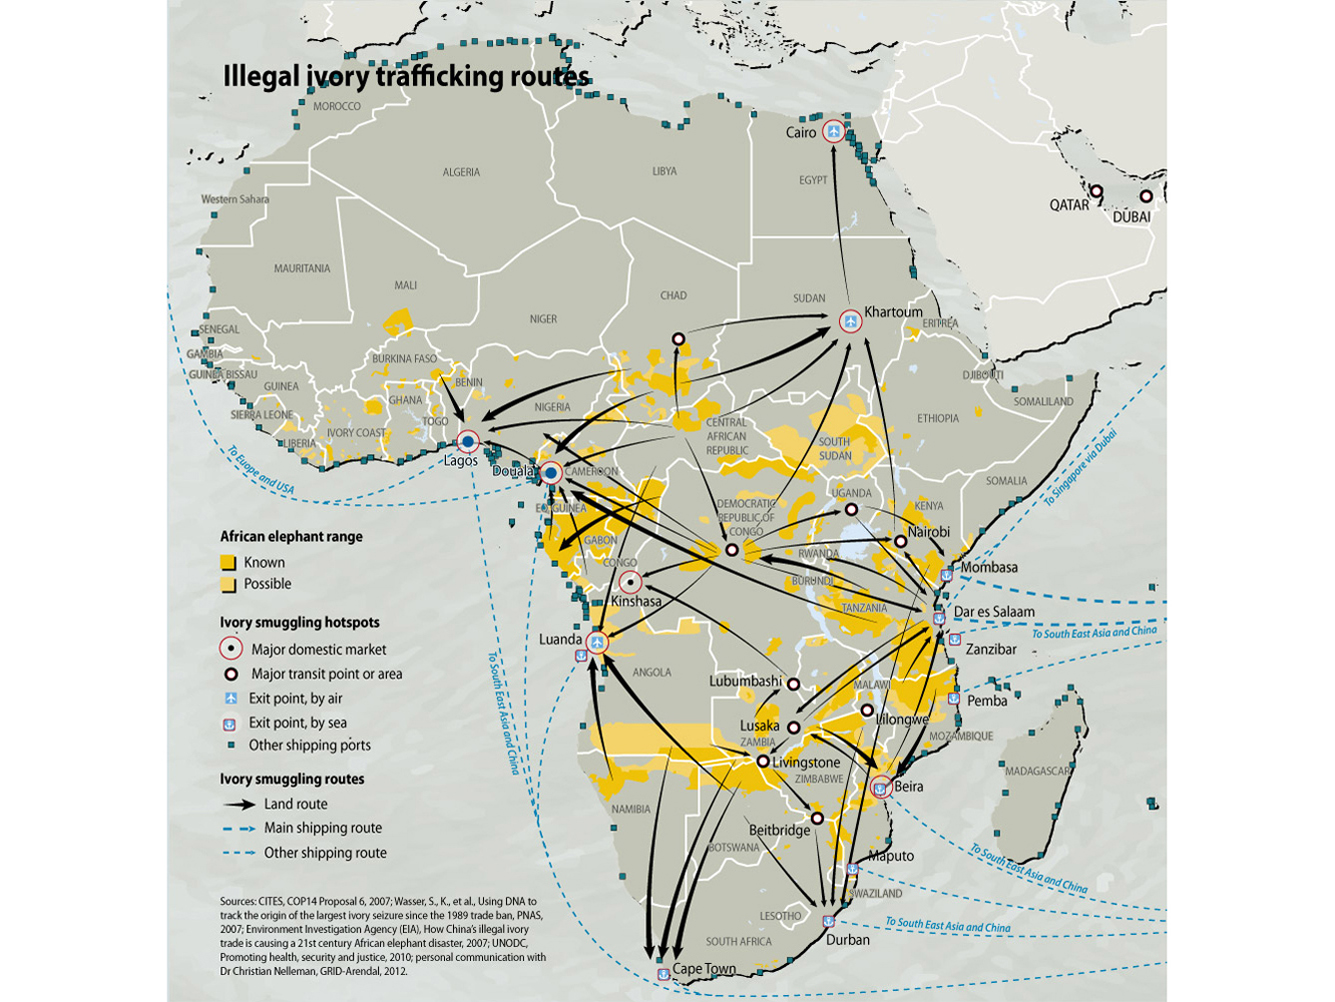 illegal-ivory-trafficking-routes_486e-2